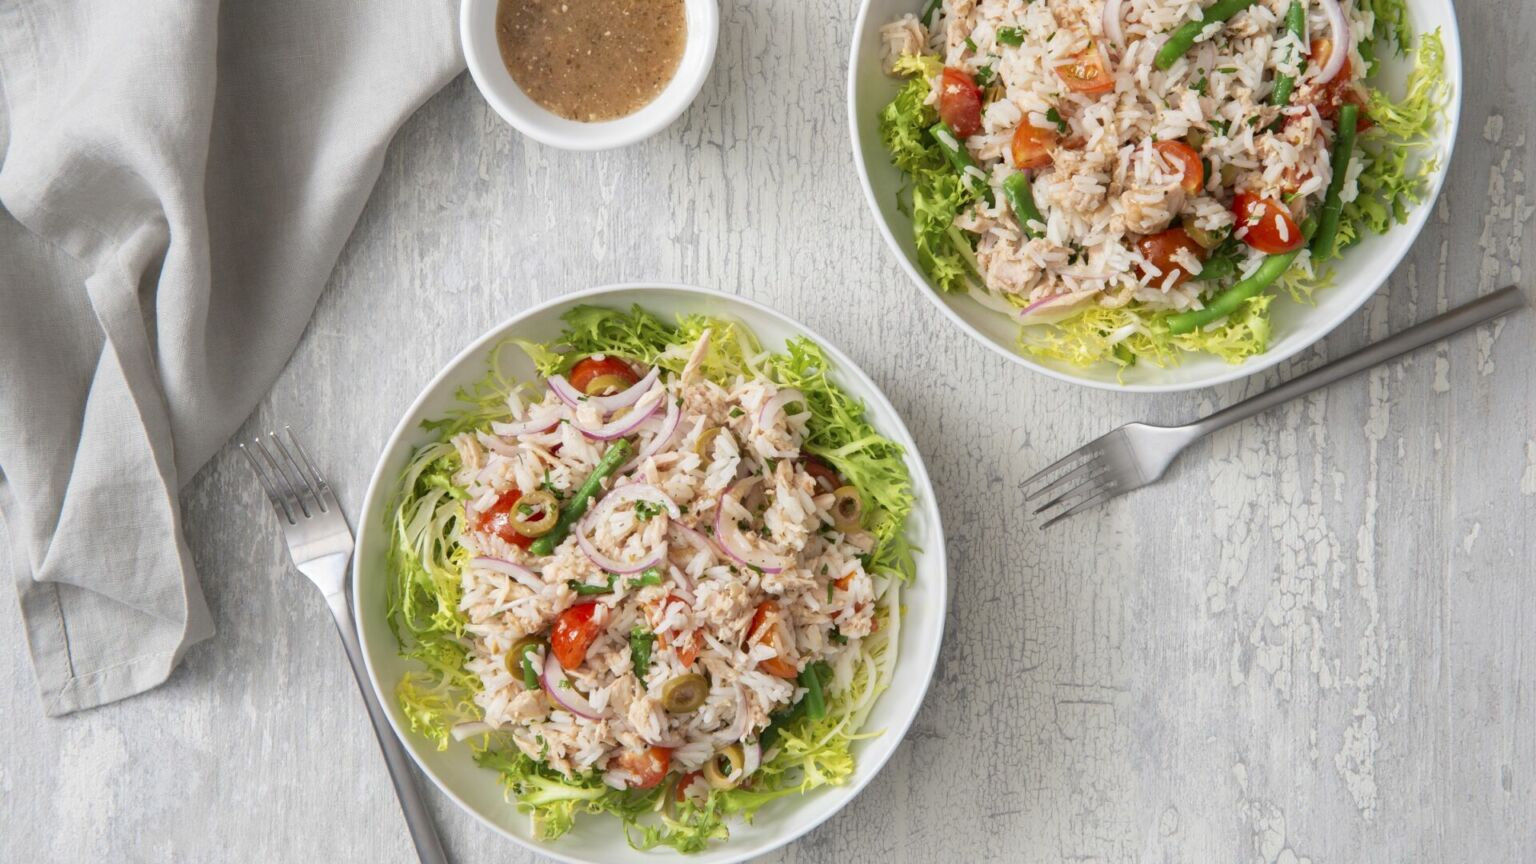 Tuna and Jasmine Rice Salad